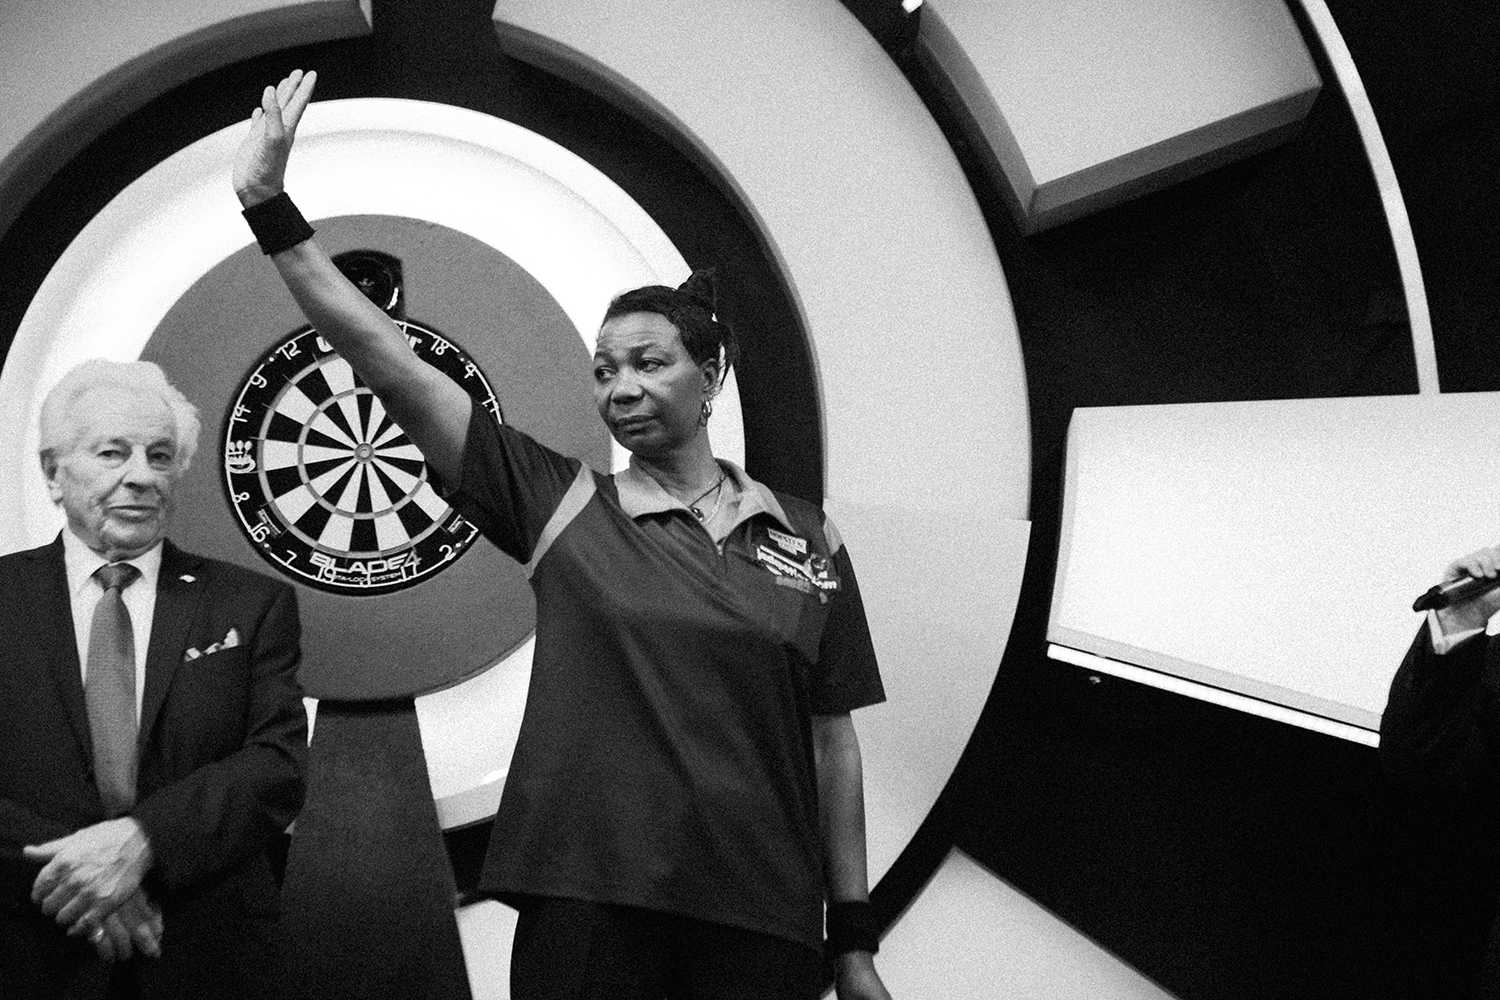 DARTS_LAKESIDE_1501.jpg